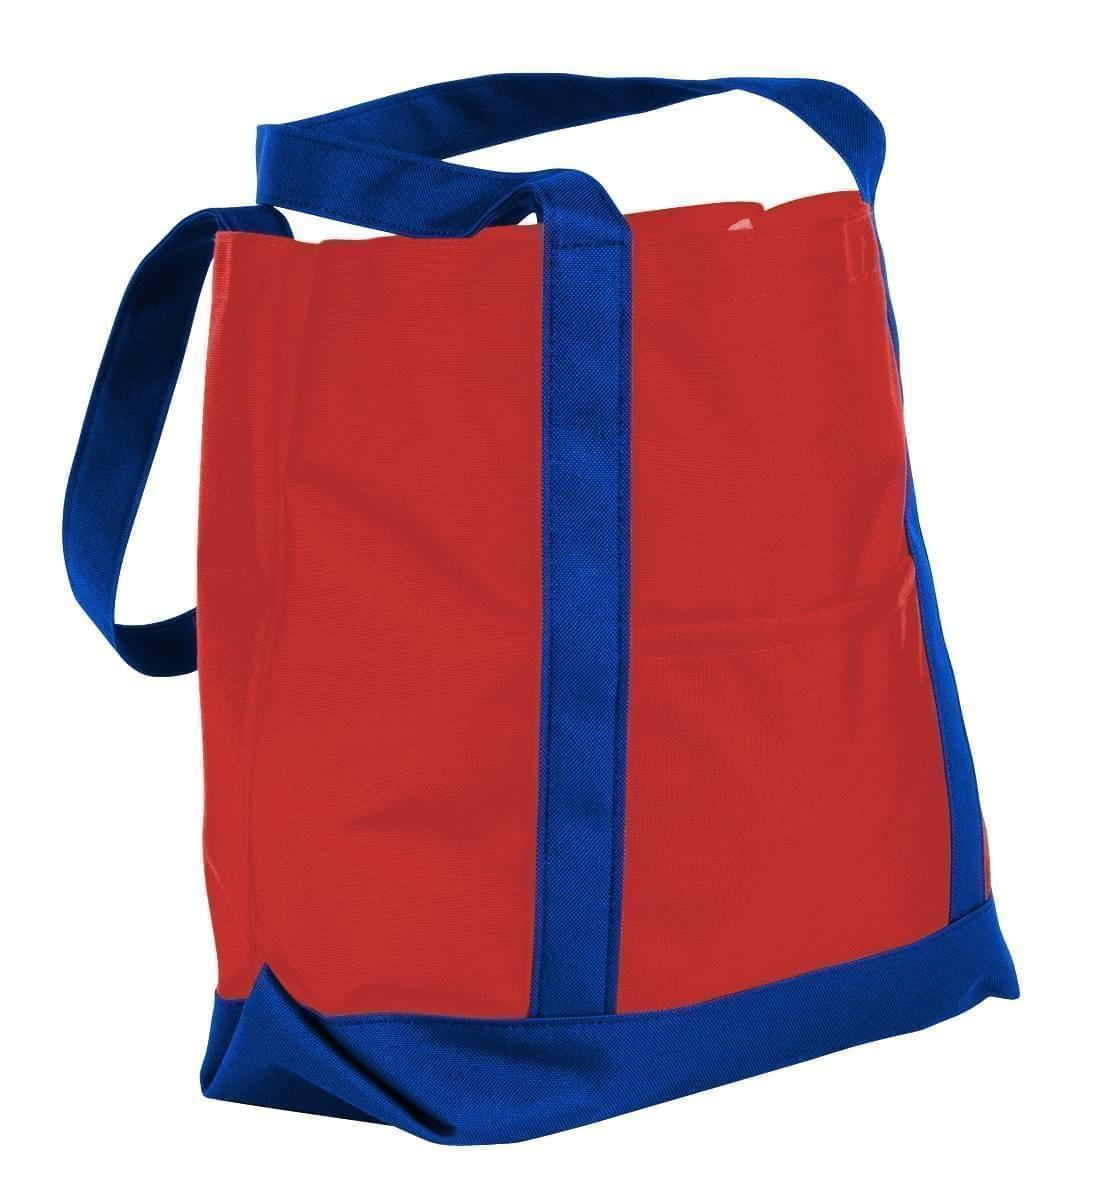 USA Made Canvas Fashion Tote Bags, Red-Royal Blue, XAACL1UAEM